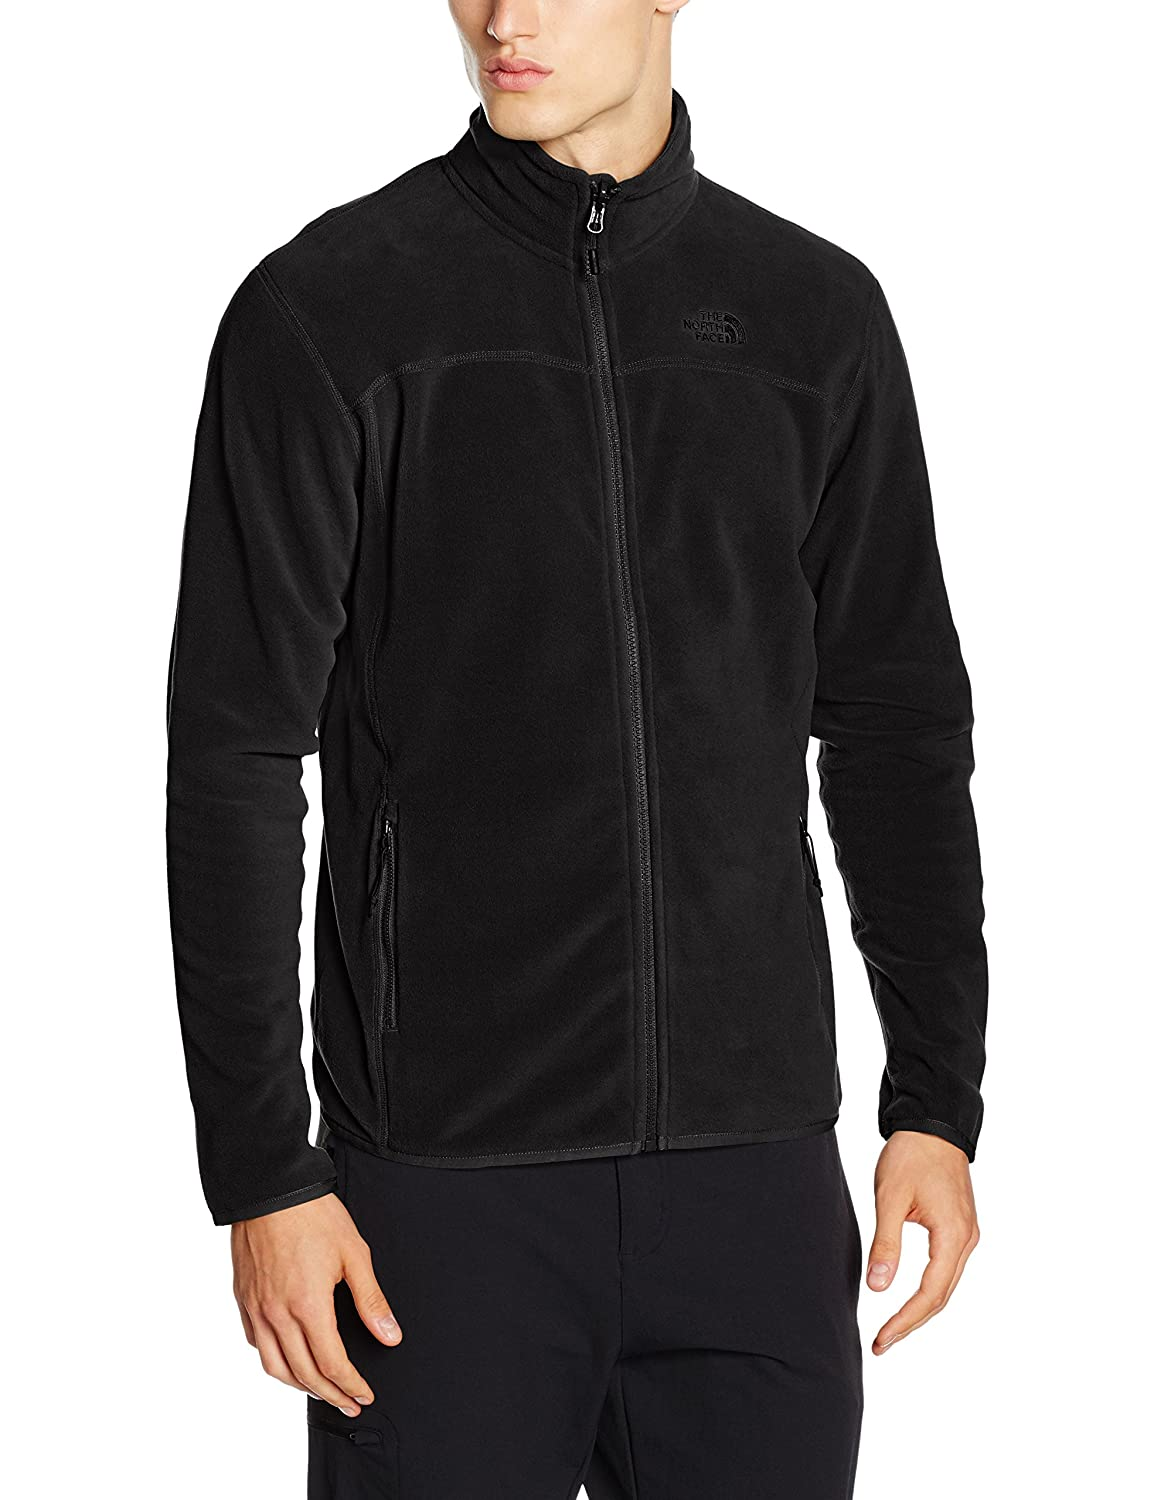 TALLA XL. The North Face 100 Glacier Chaqueta, Hombre